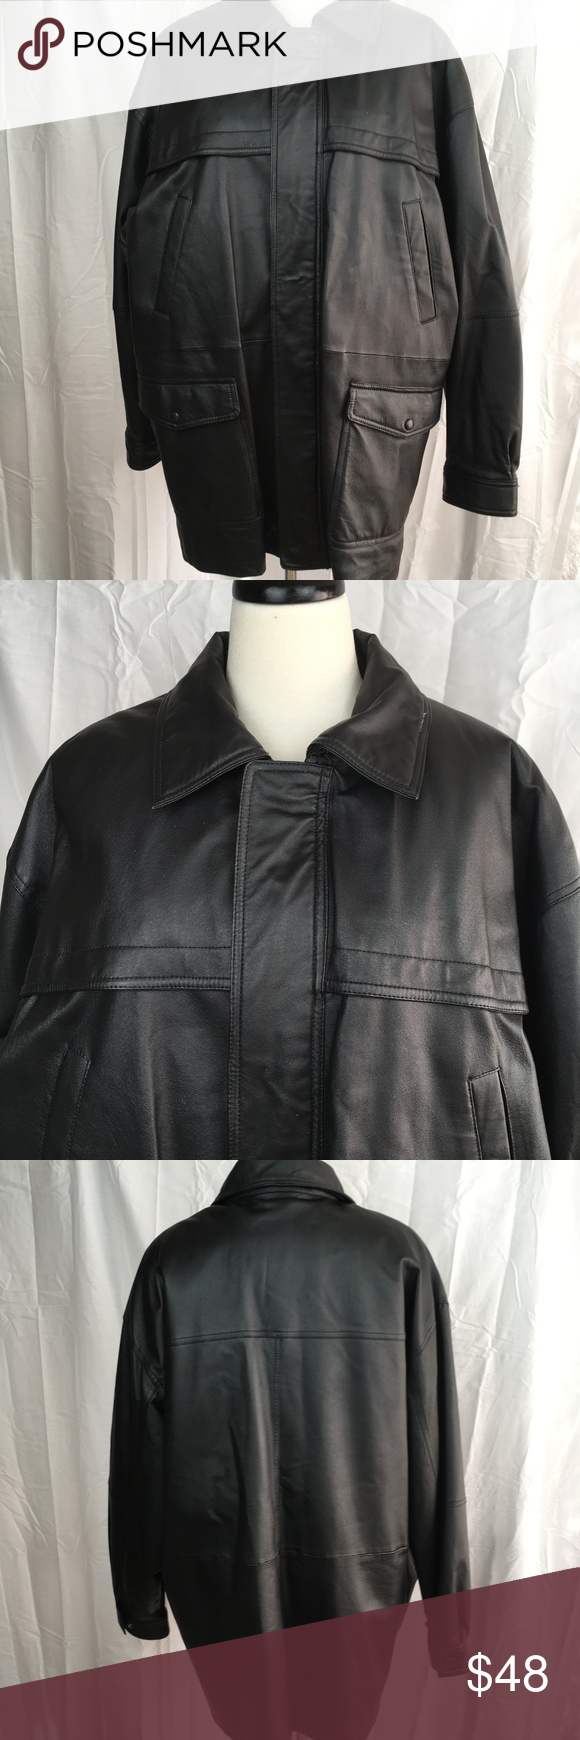 Wilsons Leather Jacket Womens Plus Size 1X Wilson's